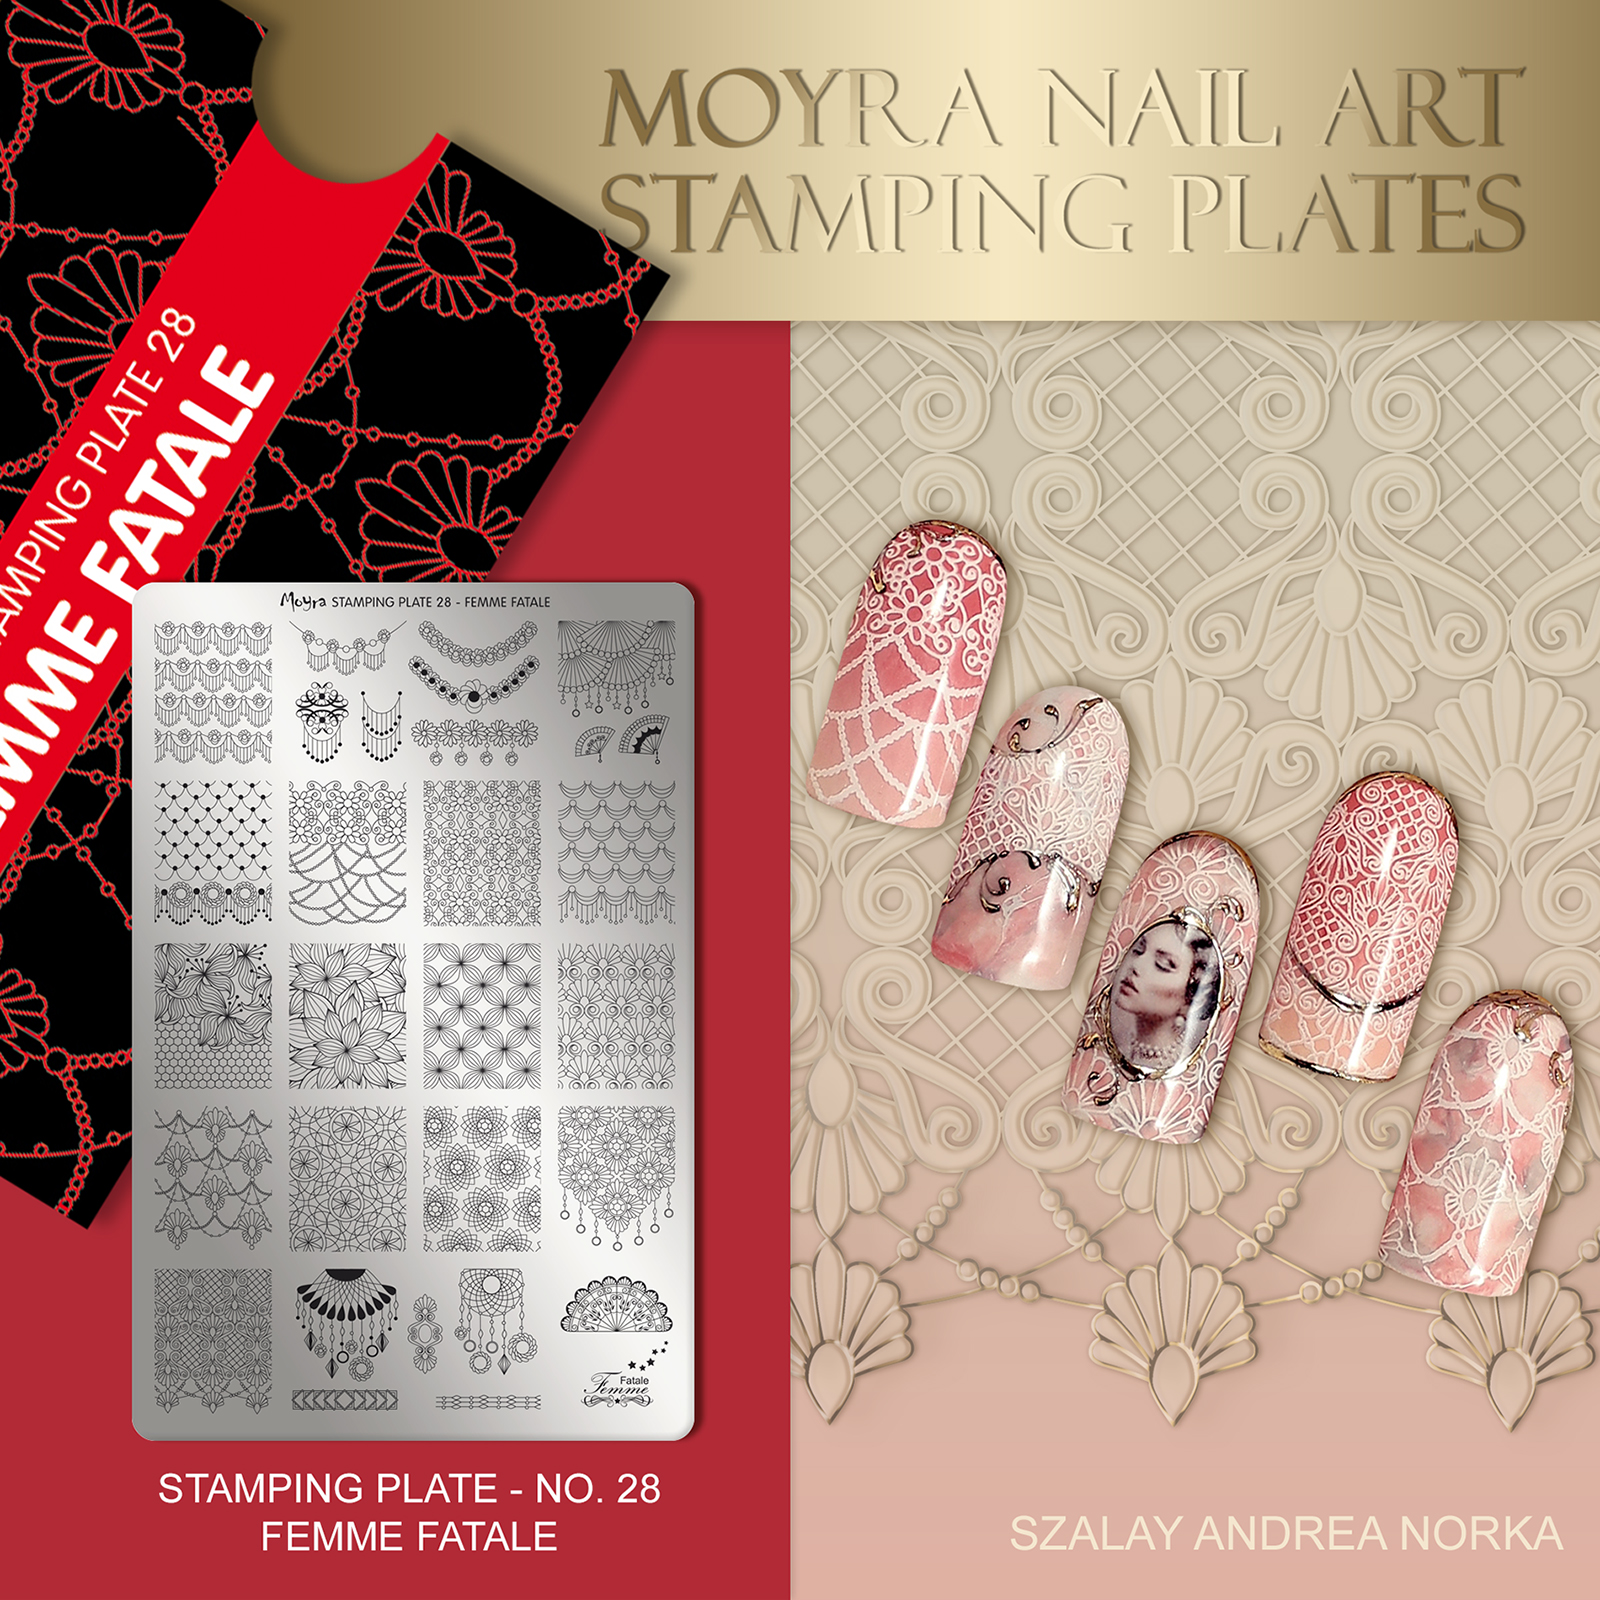 Nail design with Moyra stamping plate No. 28 Femme Fatale